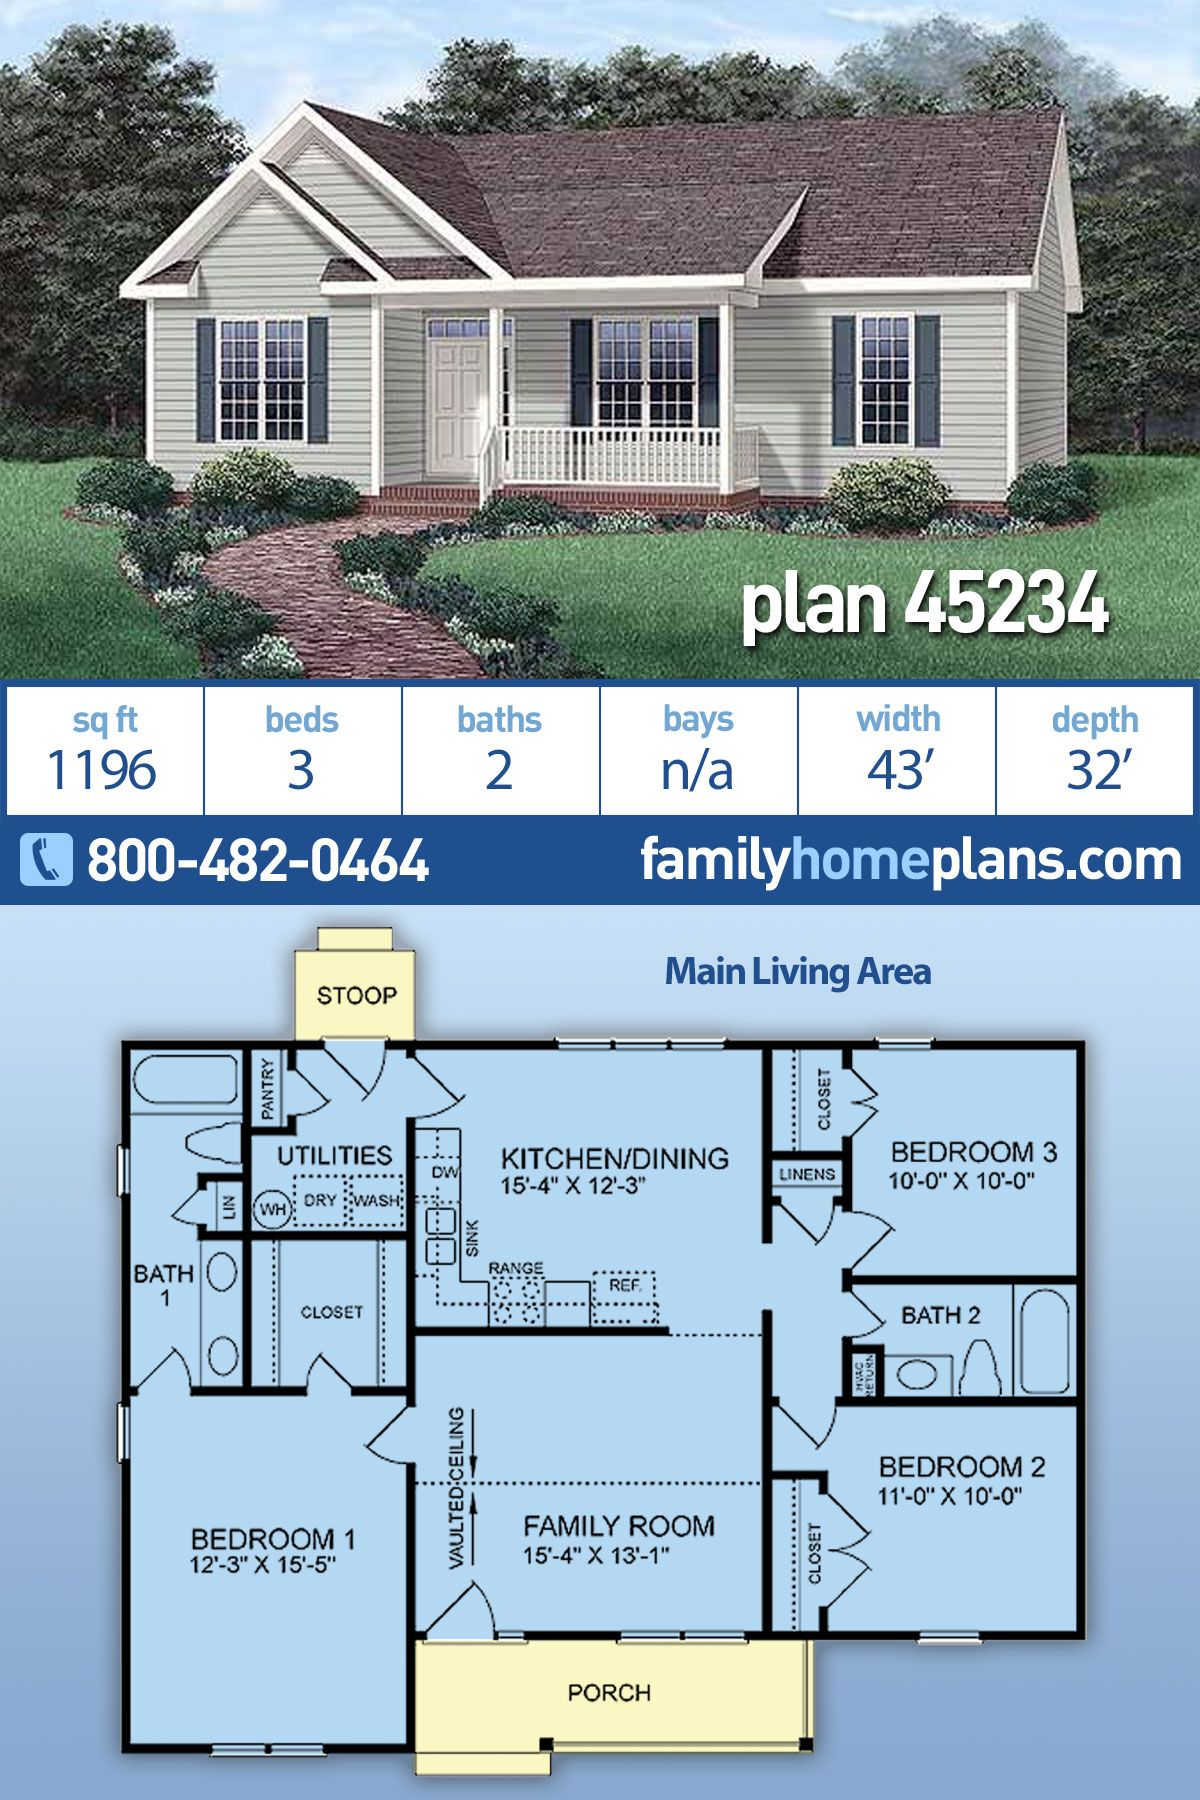 Efficient 3 Bedroom Home Plan 45234 At Family Home Plans Small House Plan Collection Family House Plans Ranch Style House Plans Basement House Plans